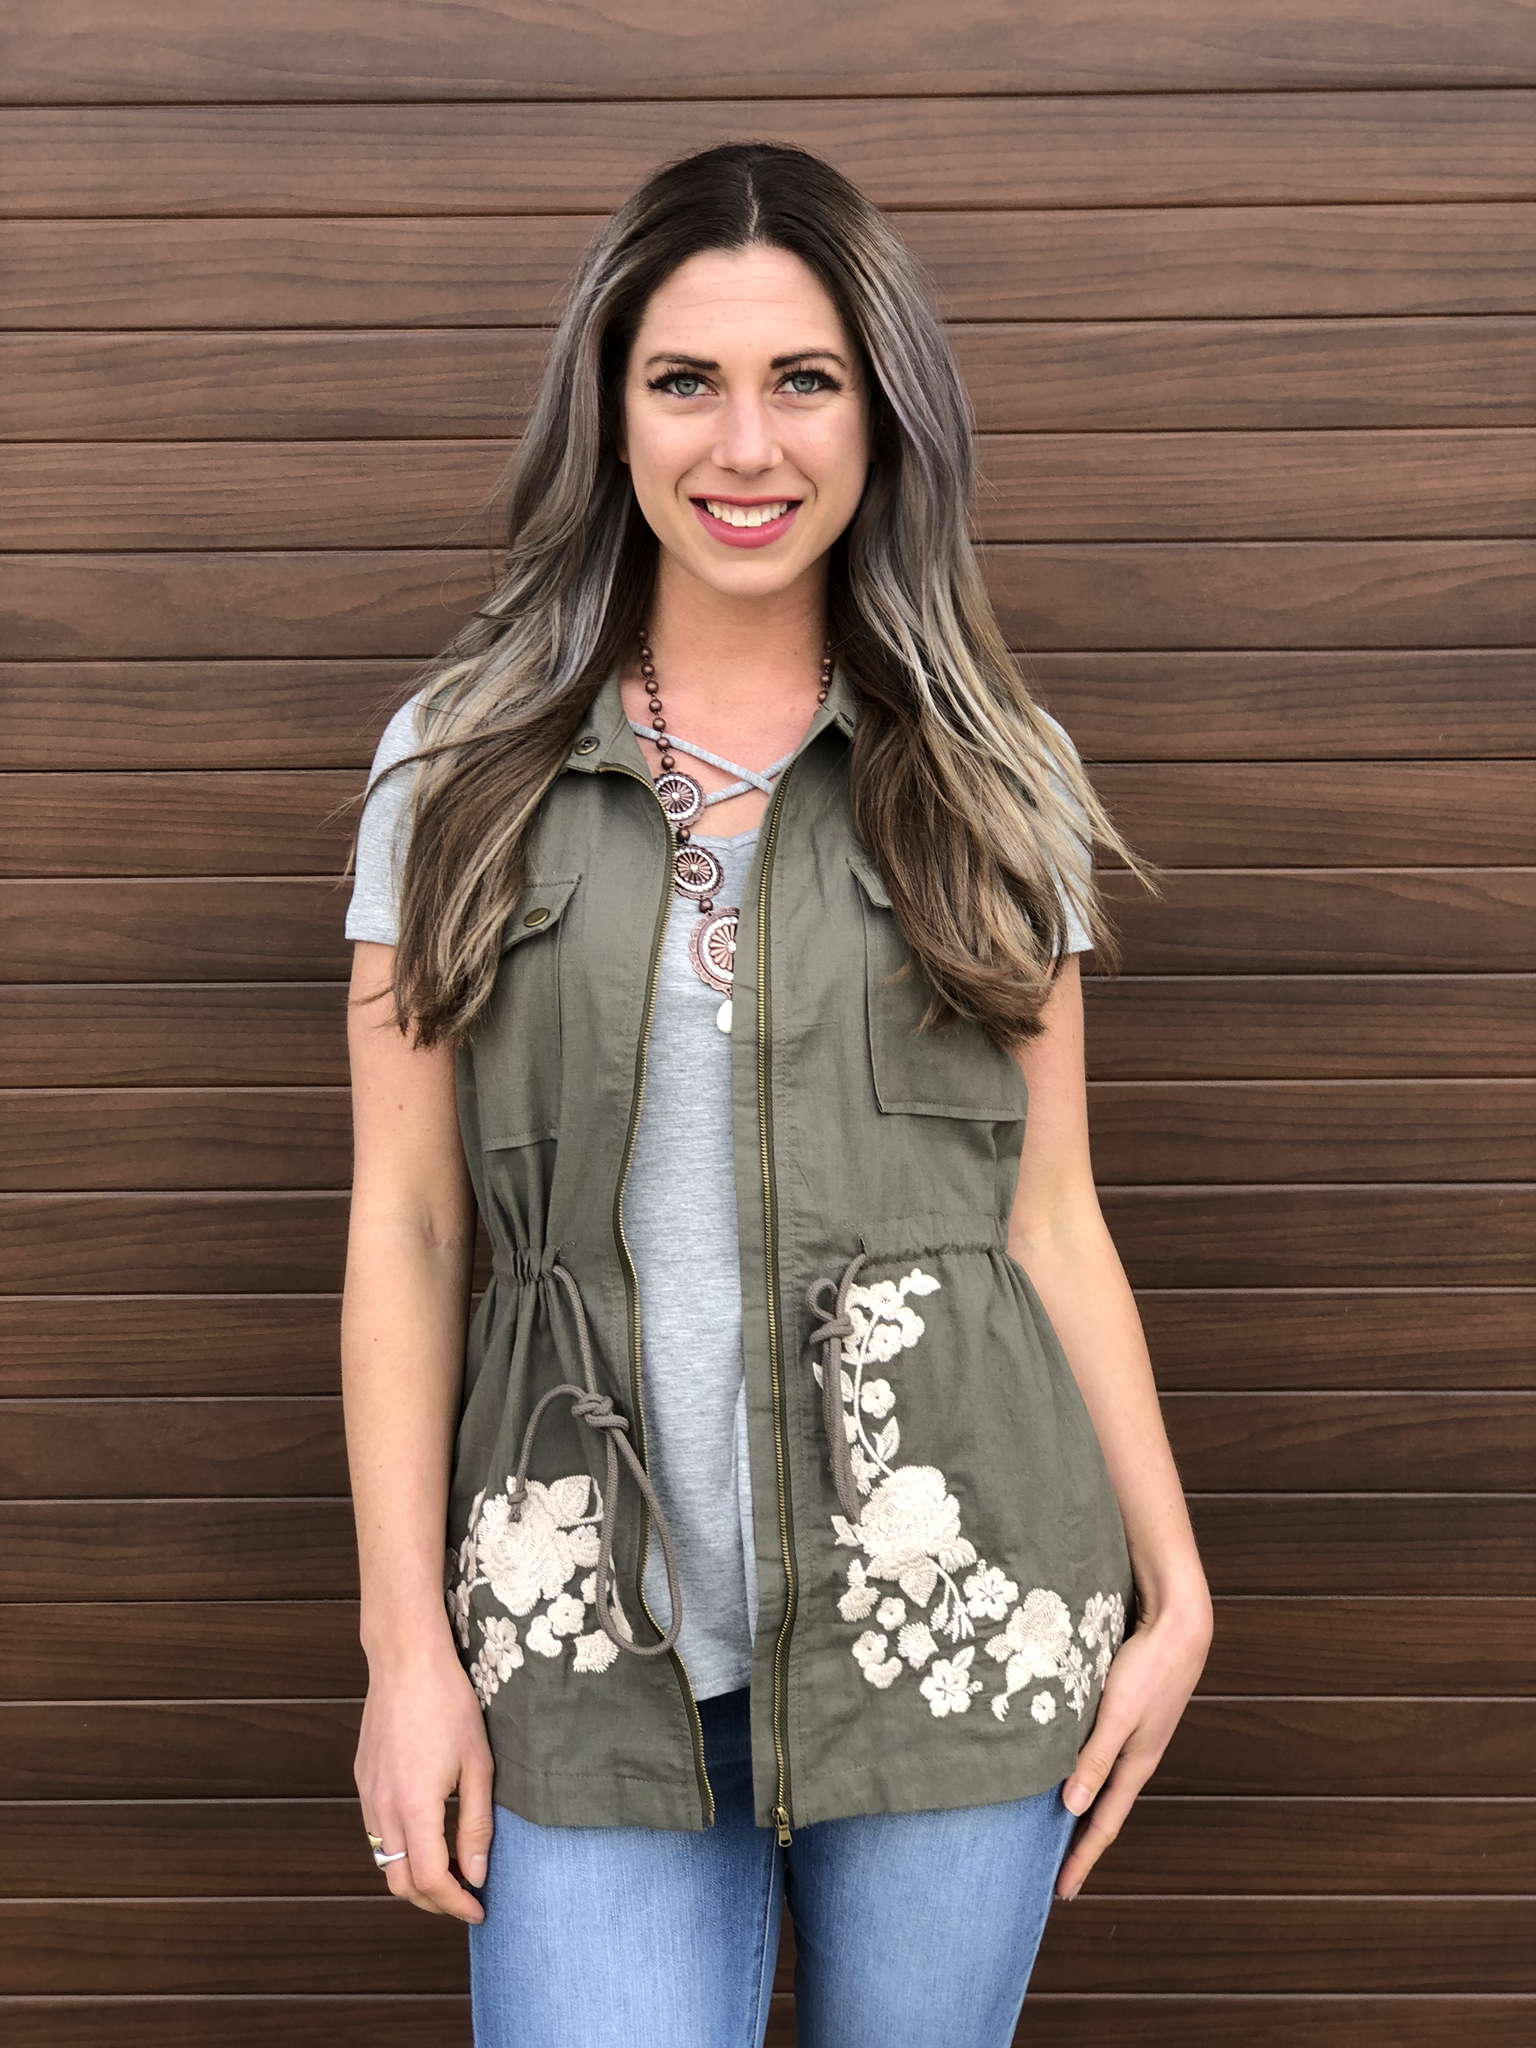 Olive Embroidered Vest - SHOW BEST SELLER  - 2 medium left 82191